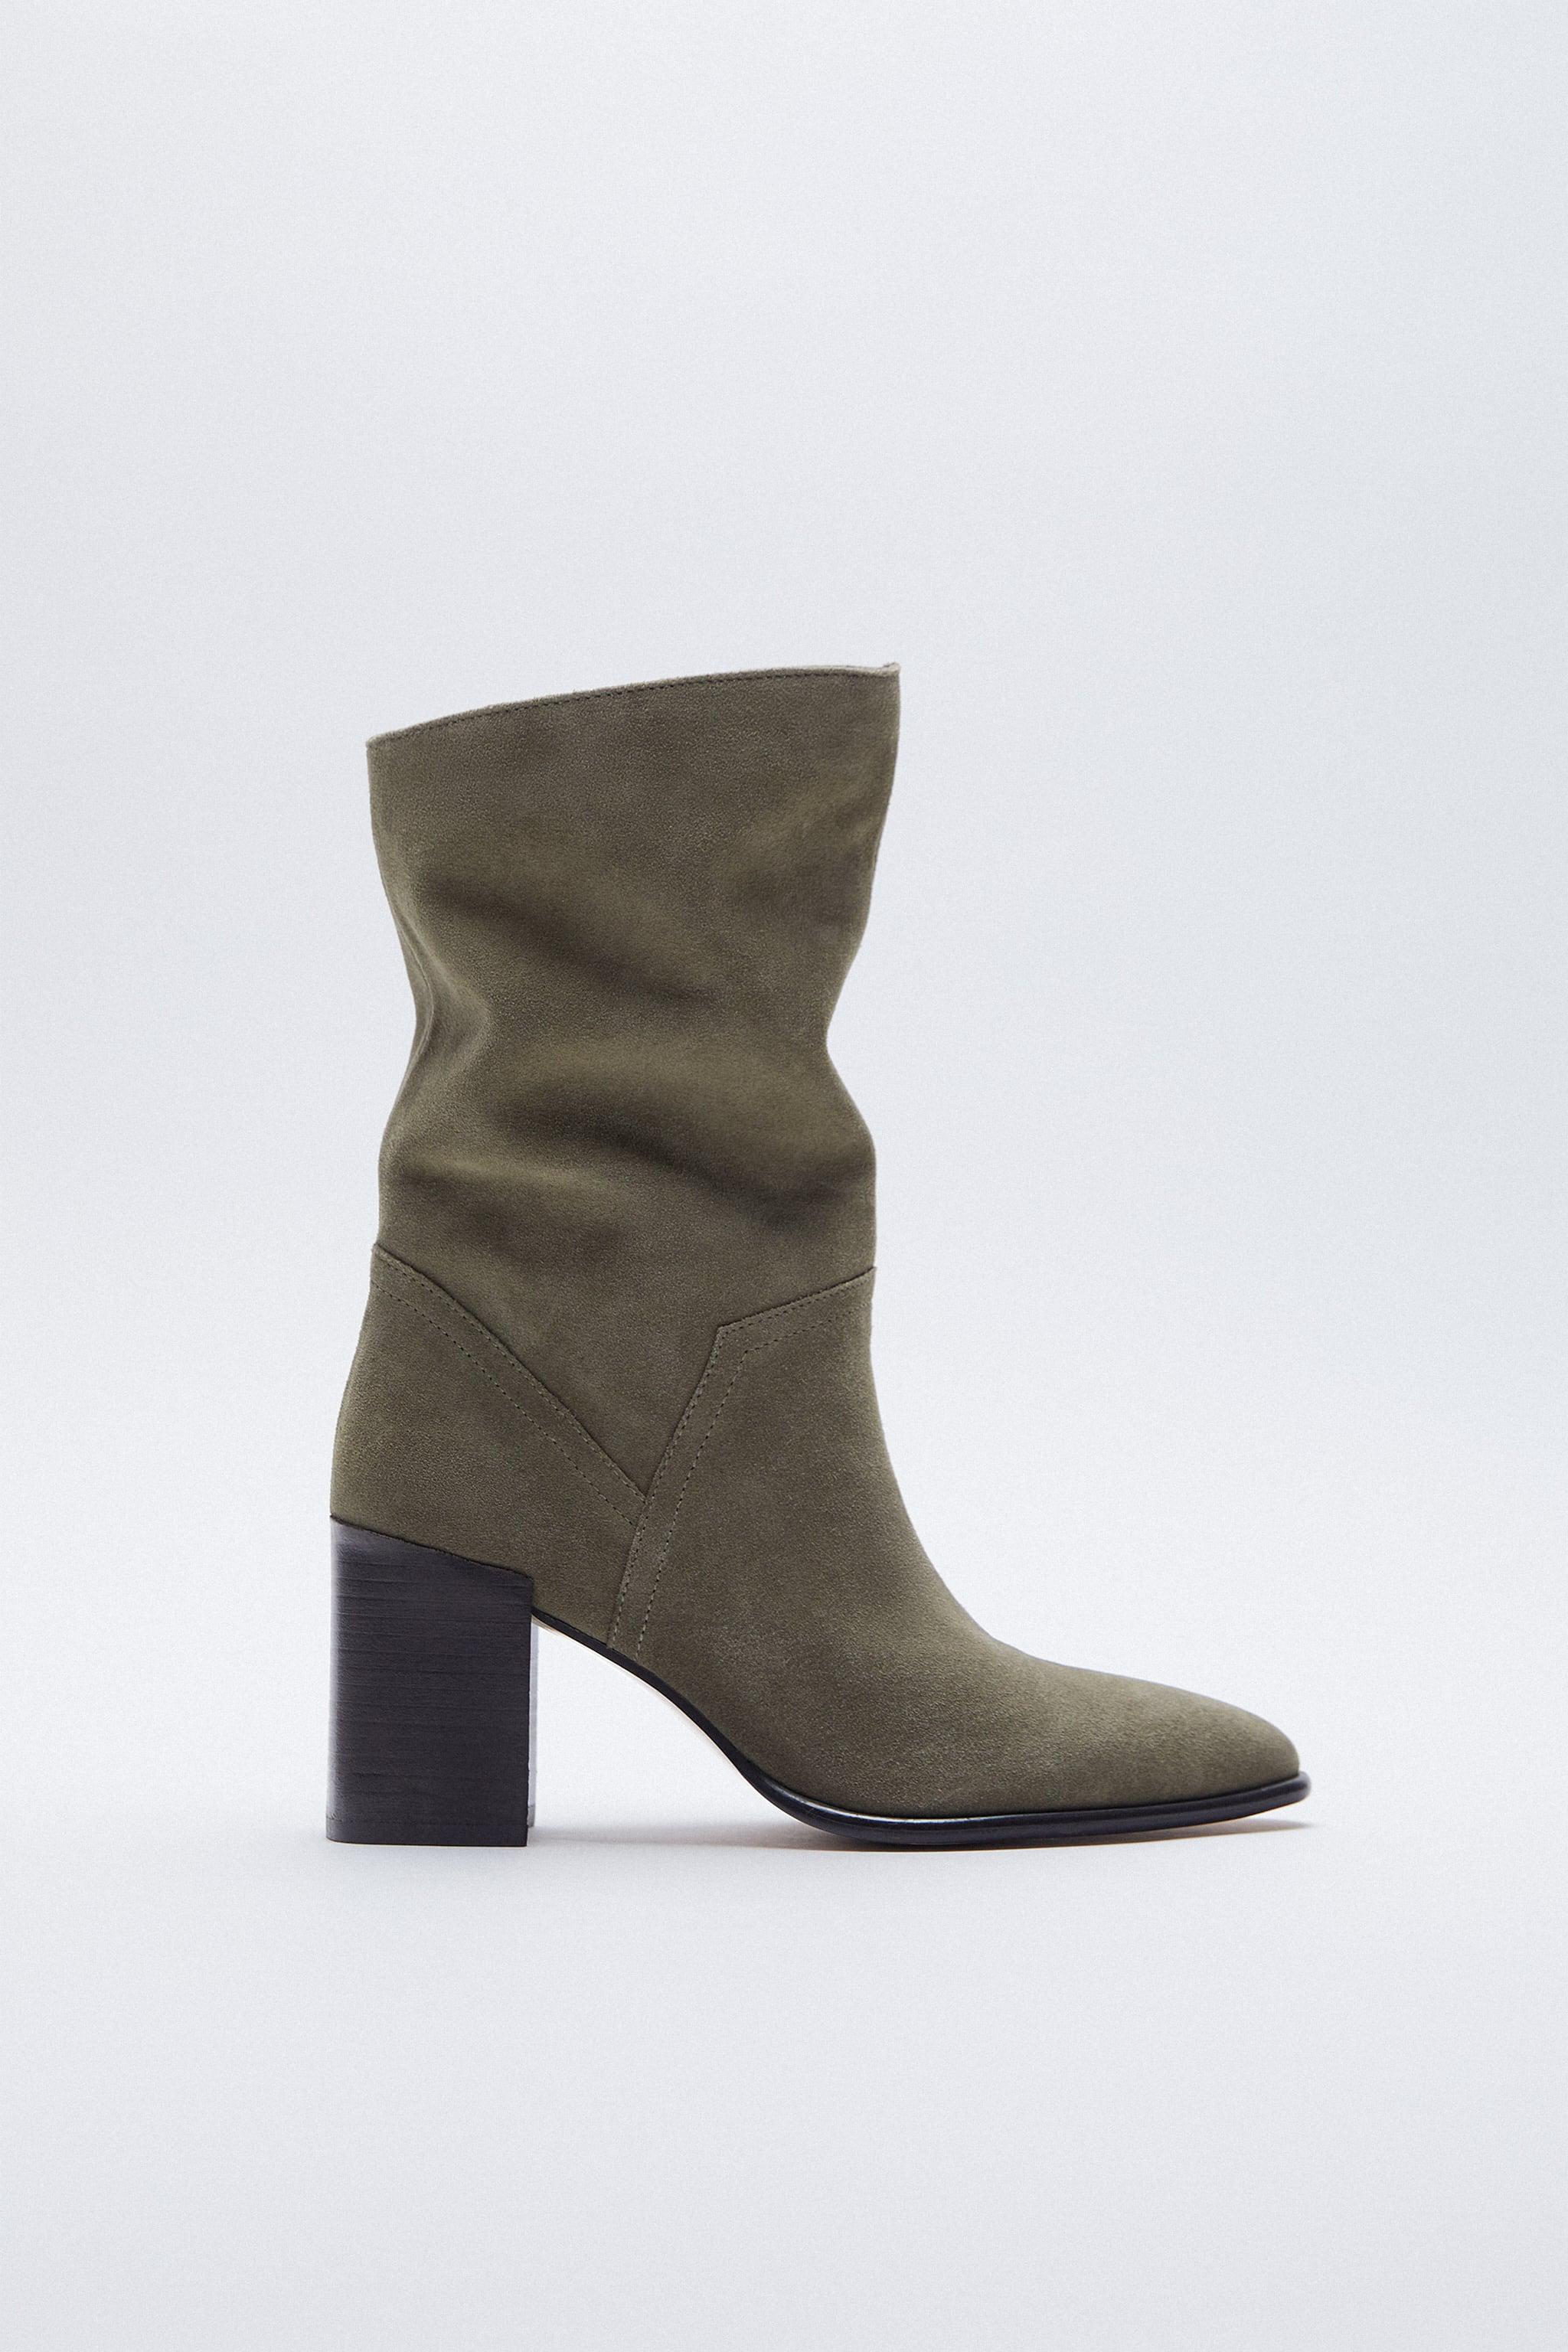 SPLIT LEATHER HEELED ANKLE BOOTS